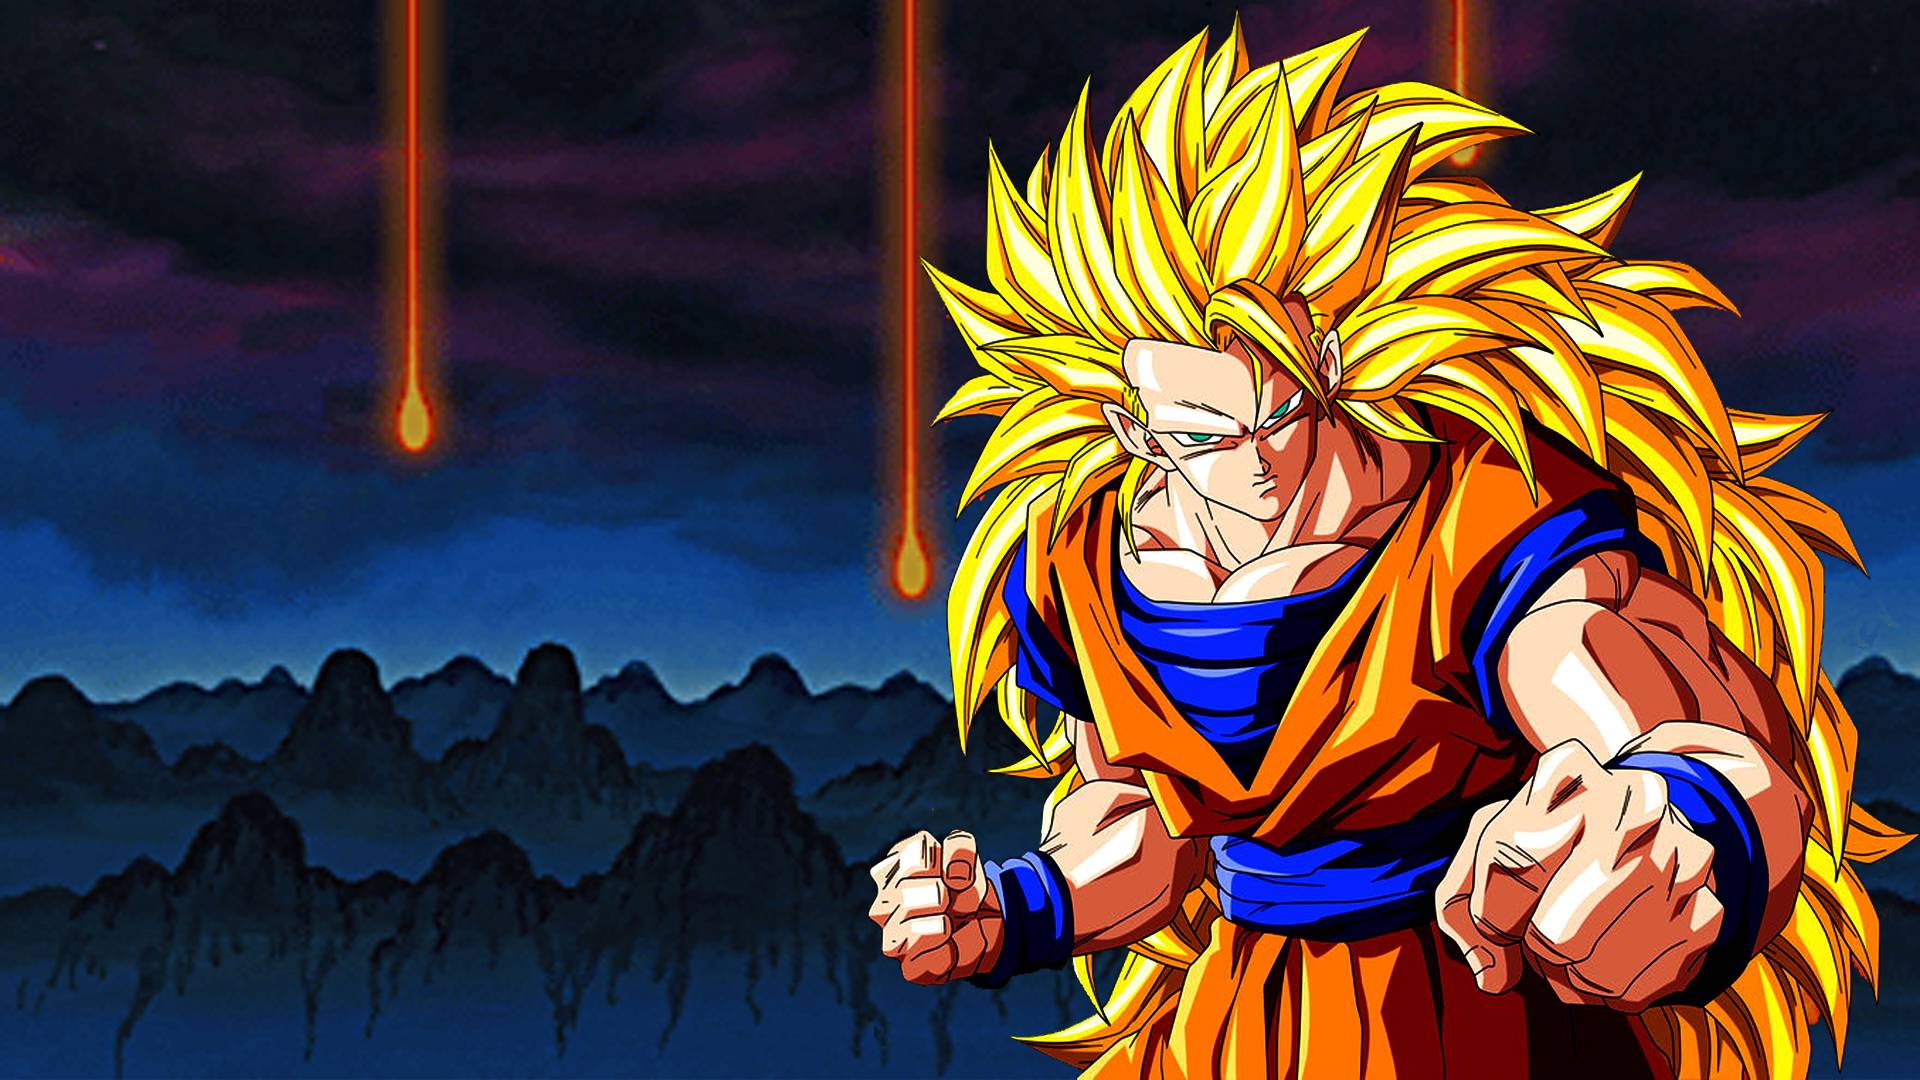 Wallpaper download dragon - Dragon Ball Z Wallpapers Goku Wallpapers Backgrounds Images Art